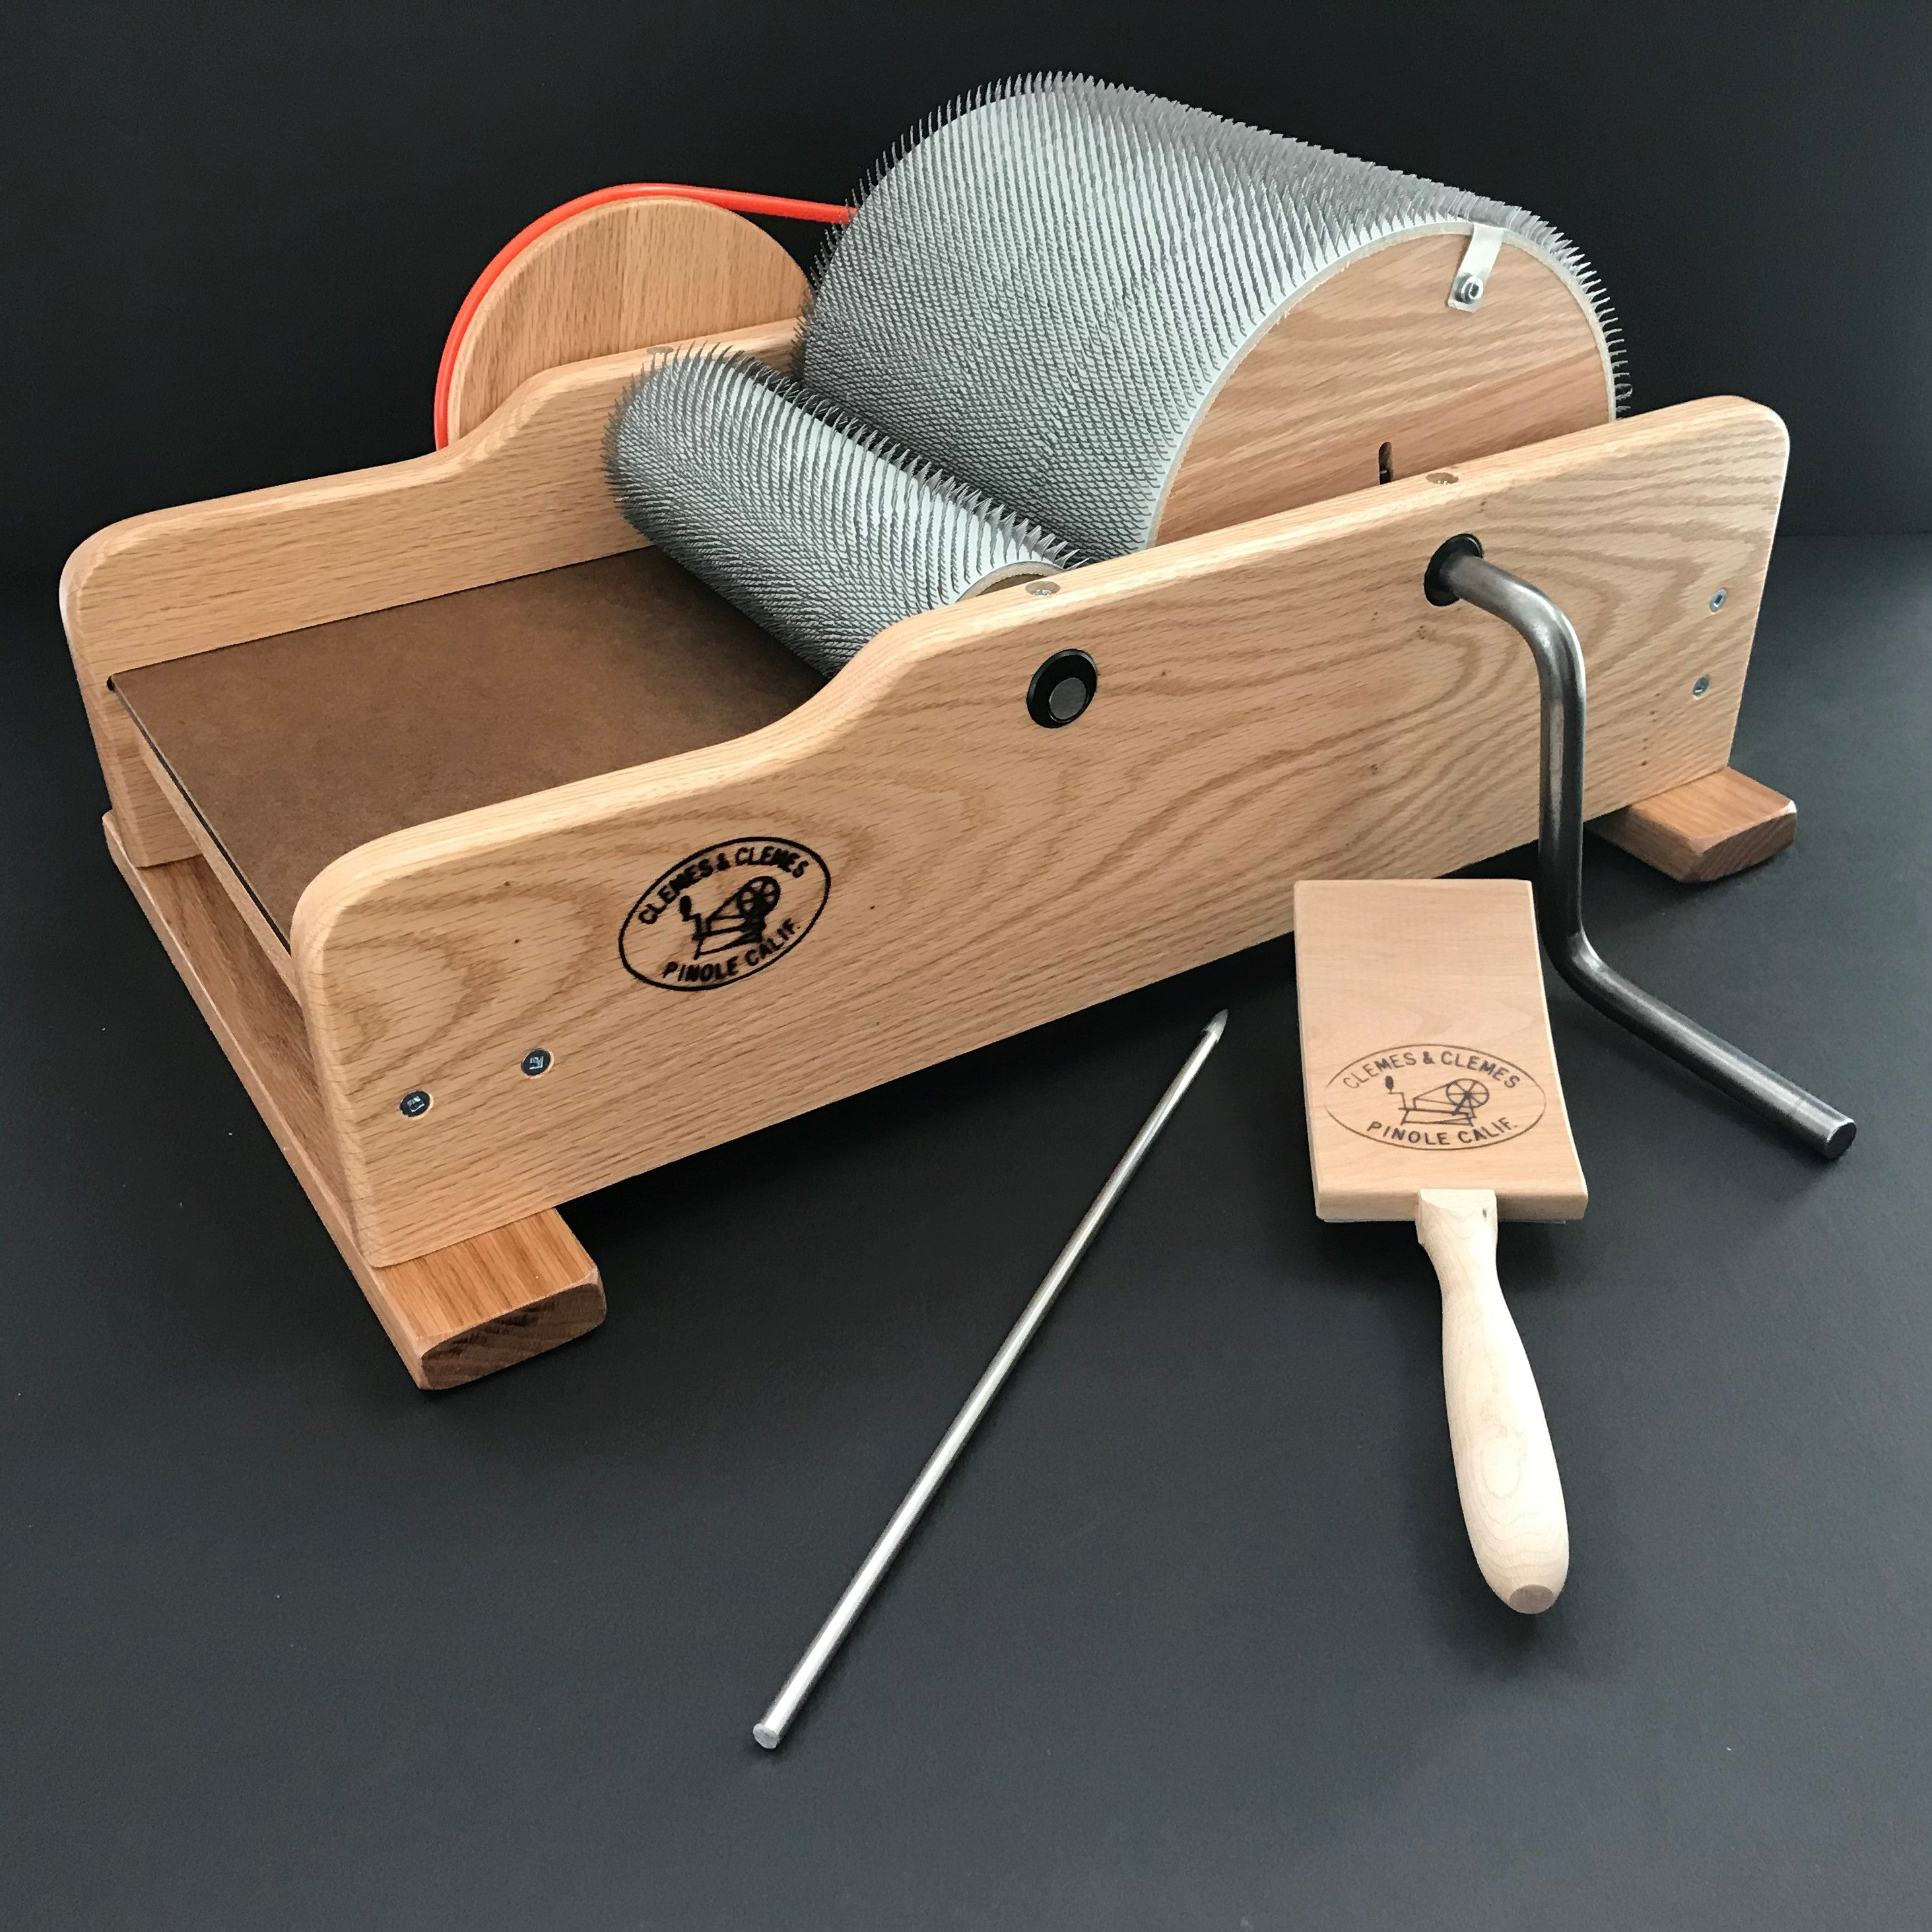 Clemes & Clemes - Standard Drum Carder